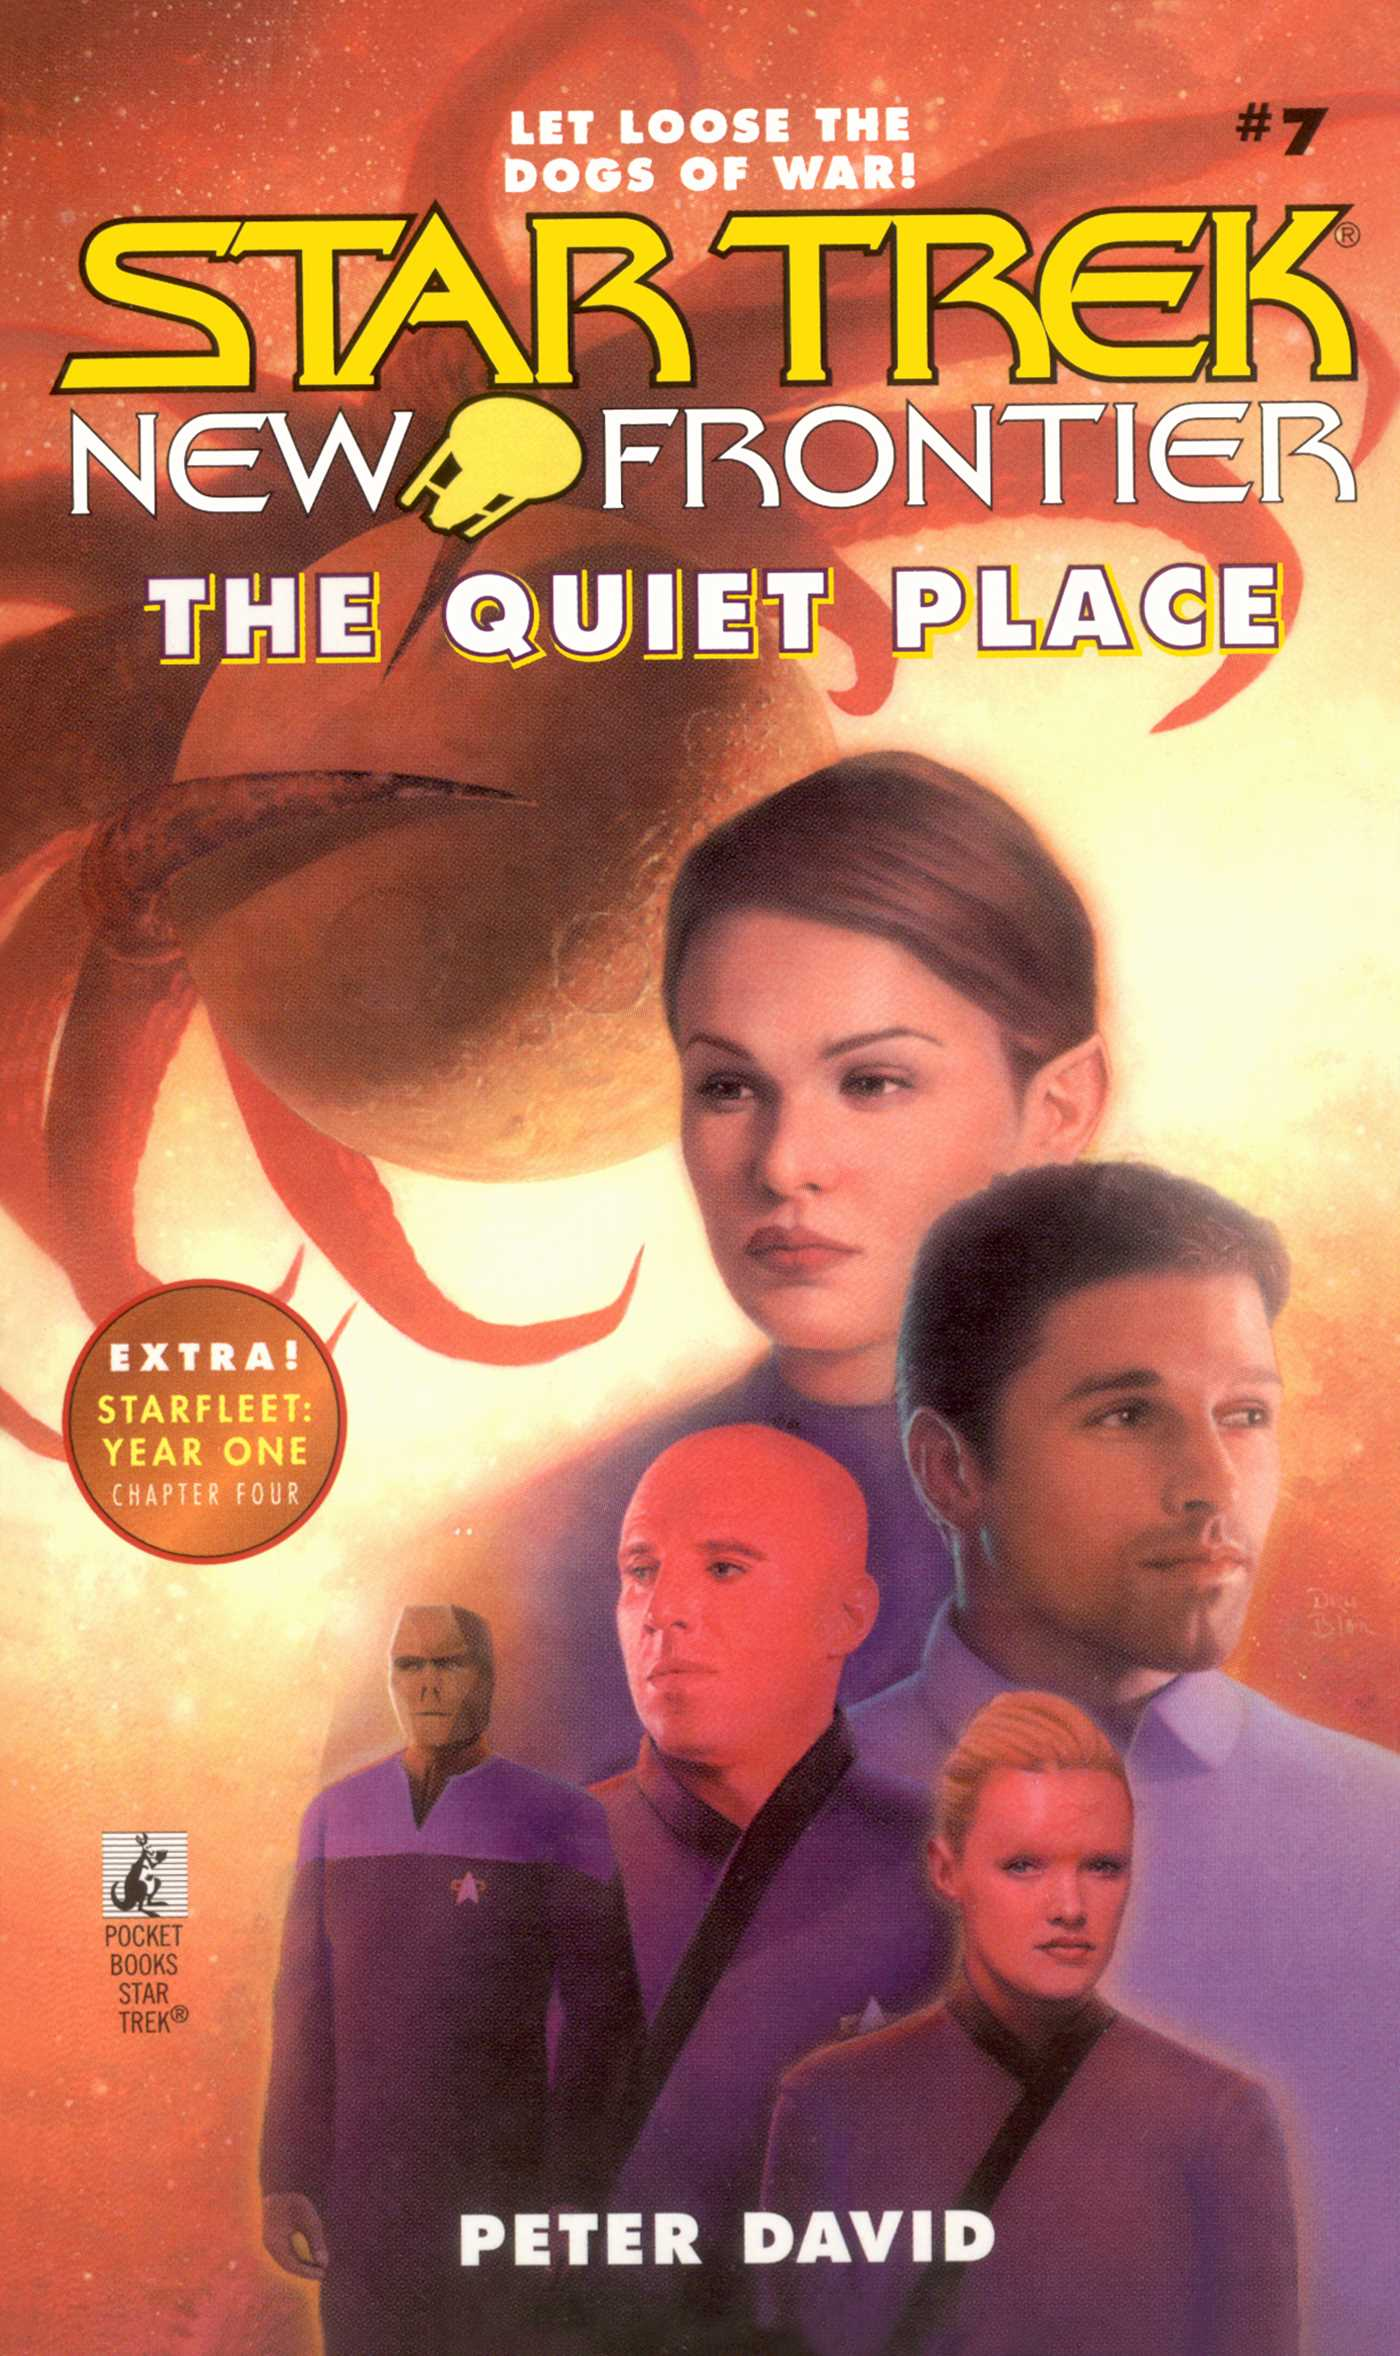 The quiet place 9780743455749 hr